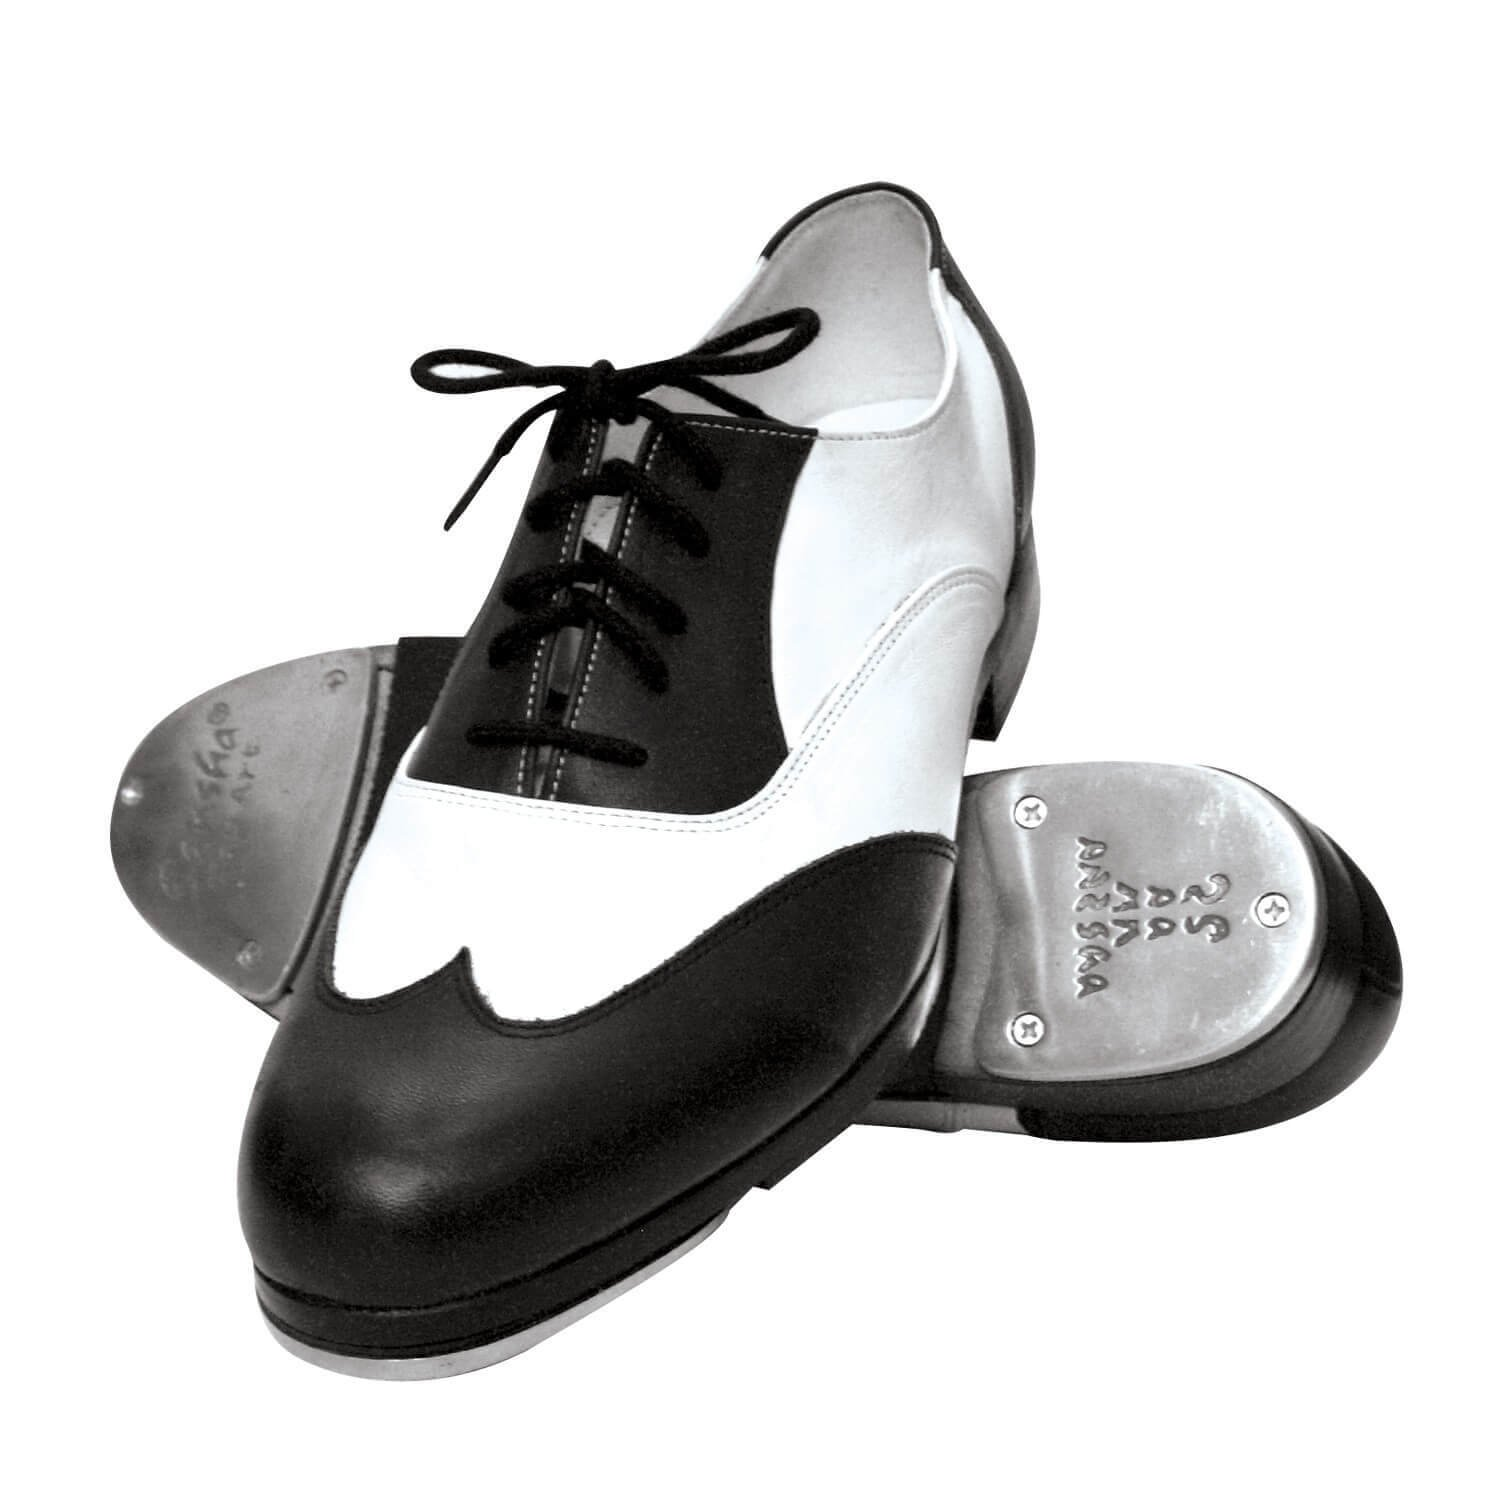 Sansha Leather Two-Tone Tap Shoes